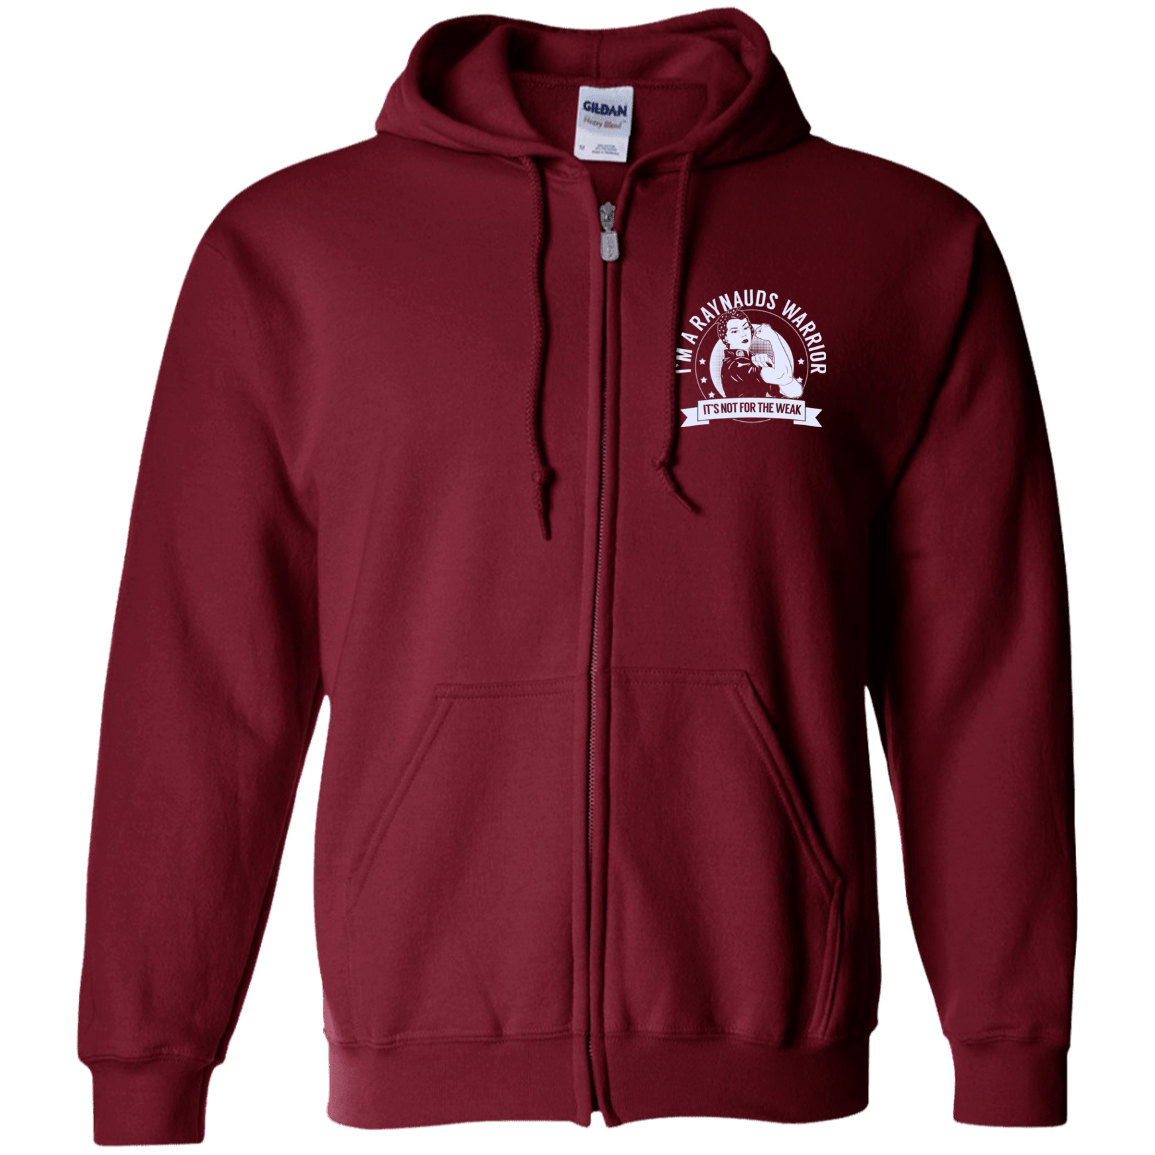 Raynaud's Disease - Raynauds Warrior NFTW Zip Up Hooded Sweatshirt - The Unchargeables